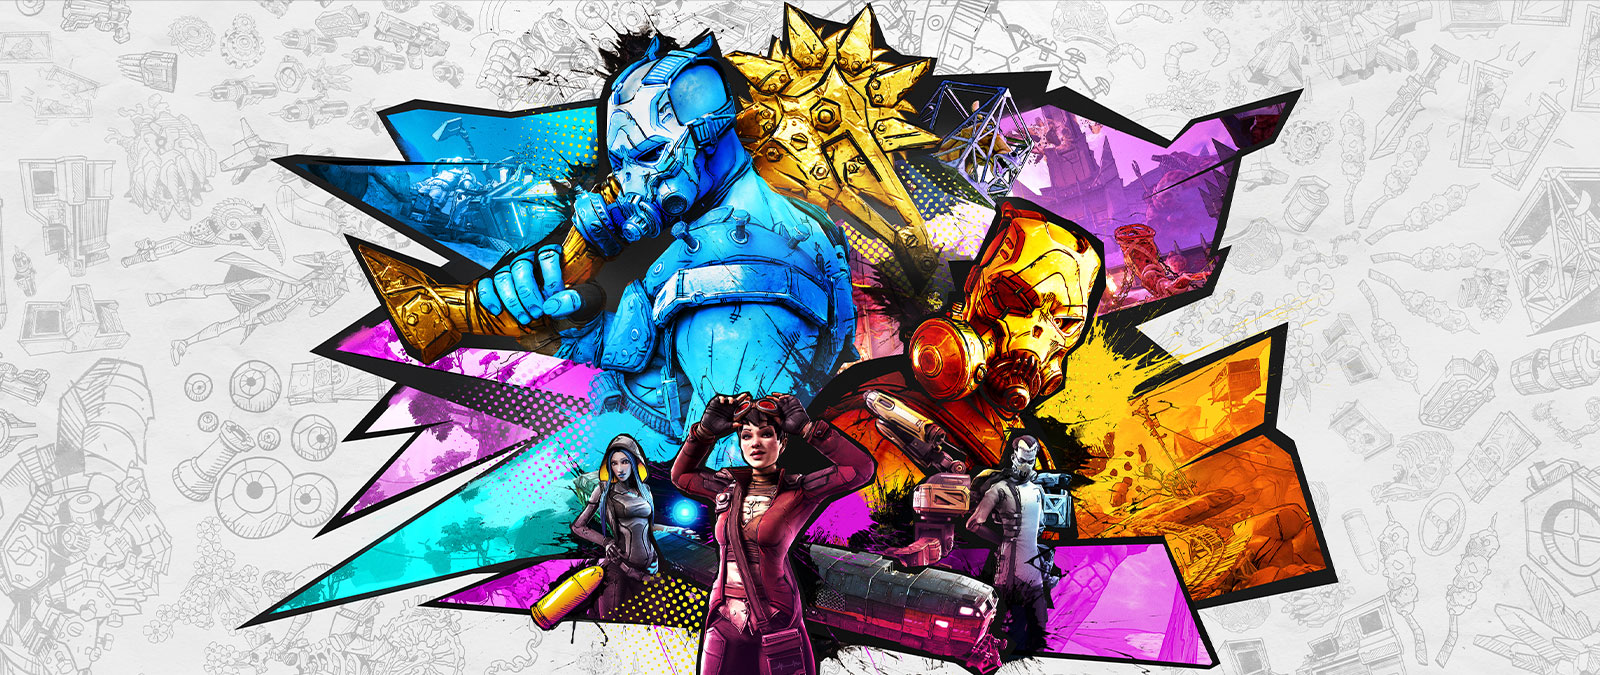 A colourful collage of Pyscho Krieg with other Vault Hunters and characters